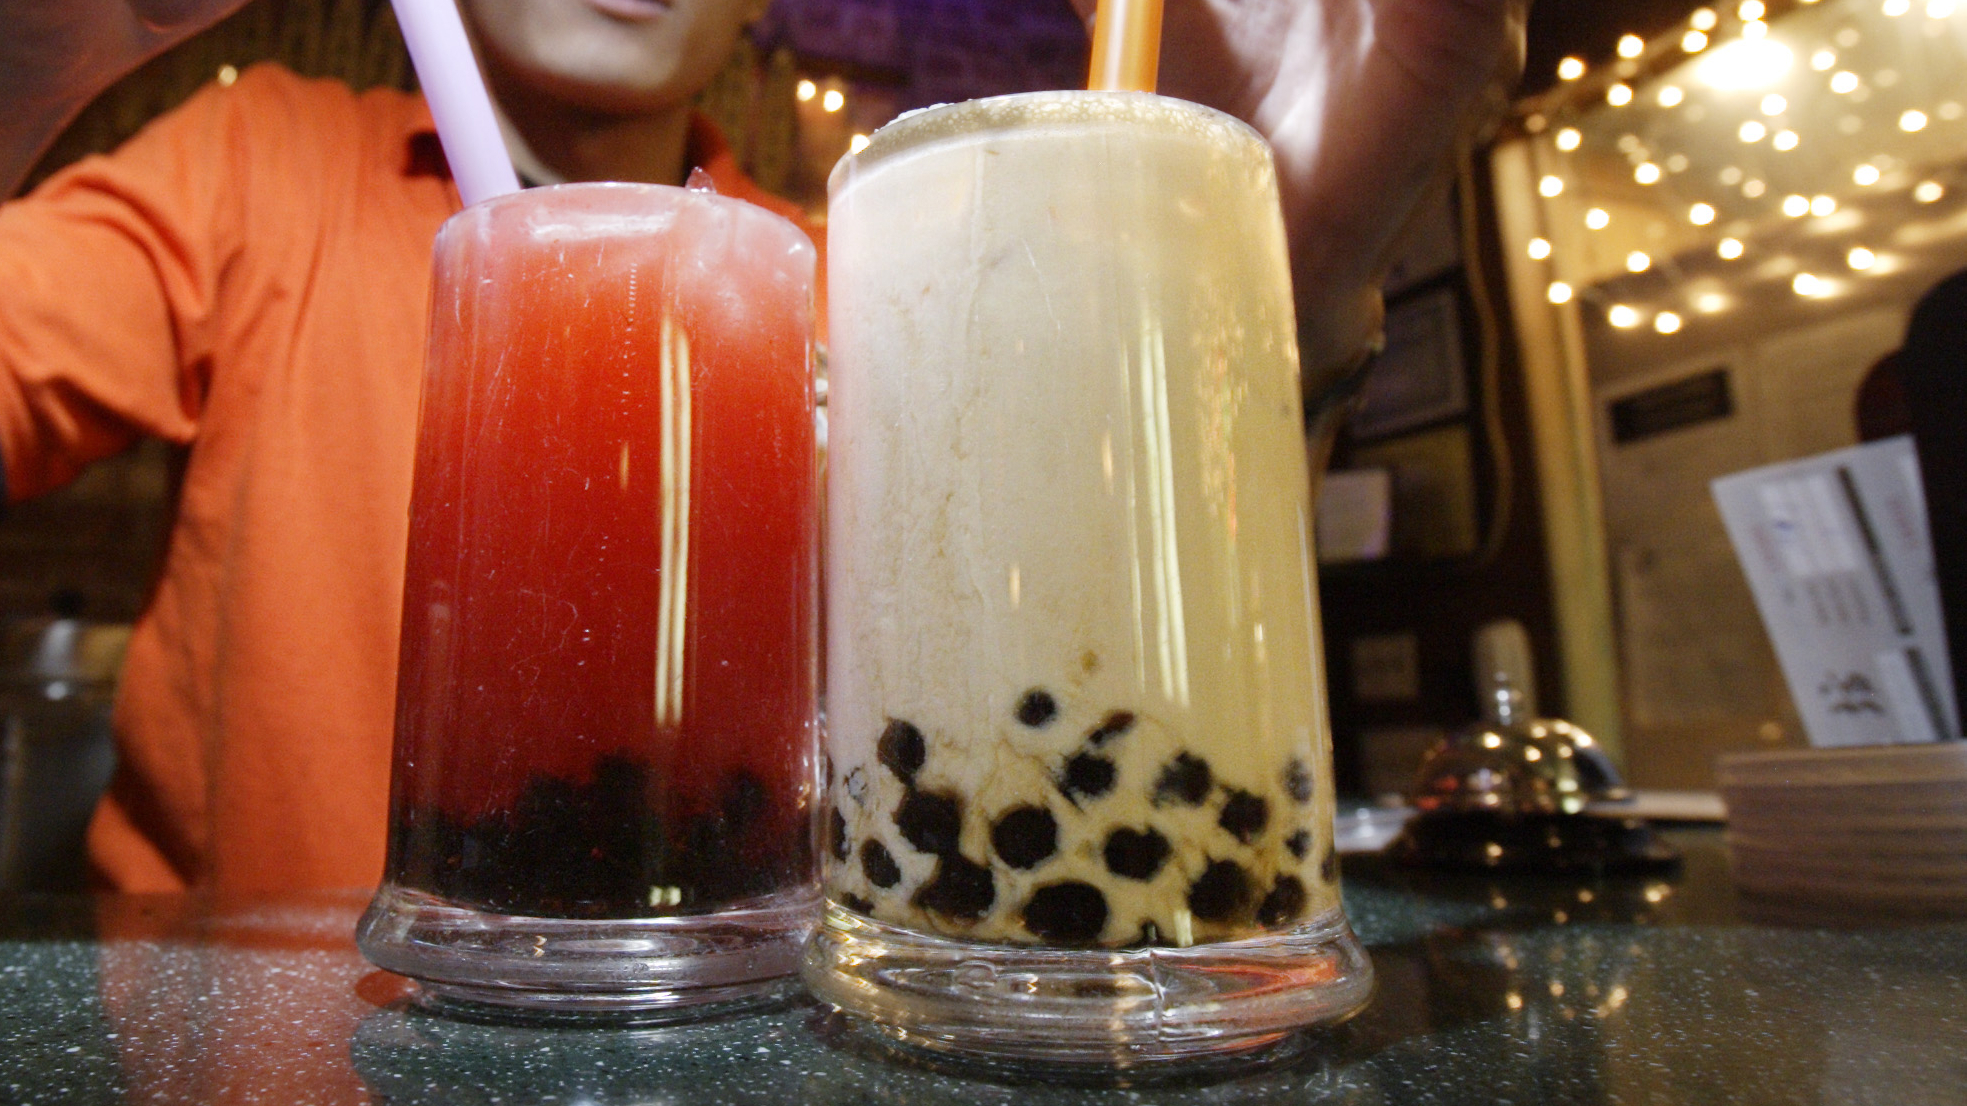 Jim He, of the Green Tea Cafe serves up glasses of bubble tea on Mott Street in the Chinatown neighborhood of New York Friday, Jan. 14, 2005. An Asian fad, the milky tea with little balls of tapioca has quickly become a feature attraction in a trip to Chinatown. (AP Photo/Gregory Bull